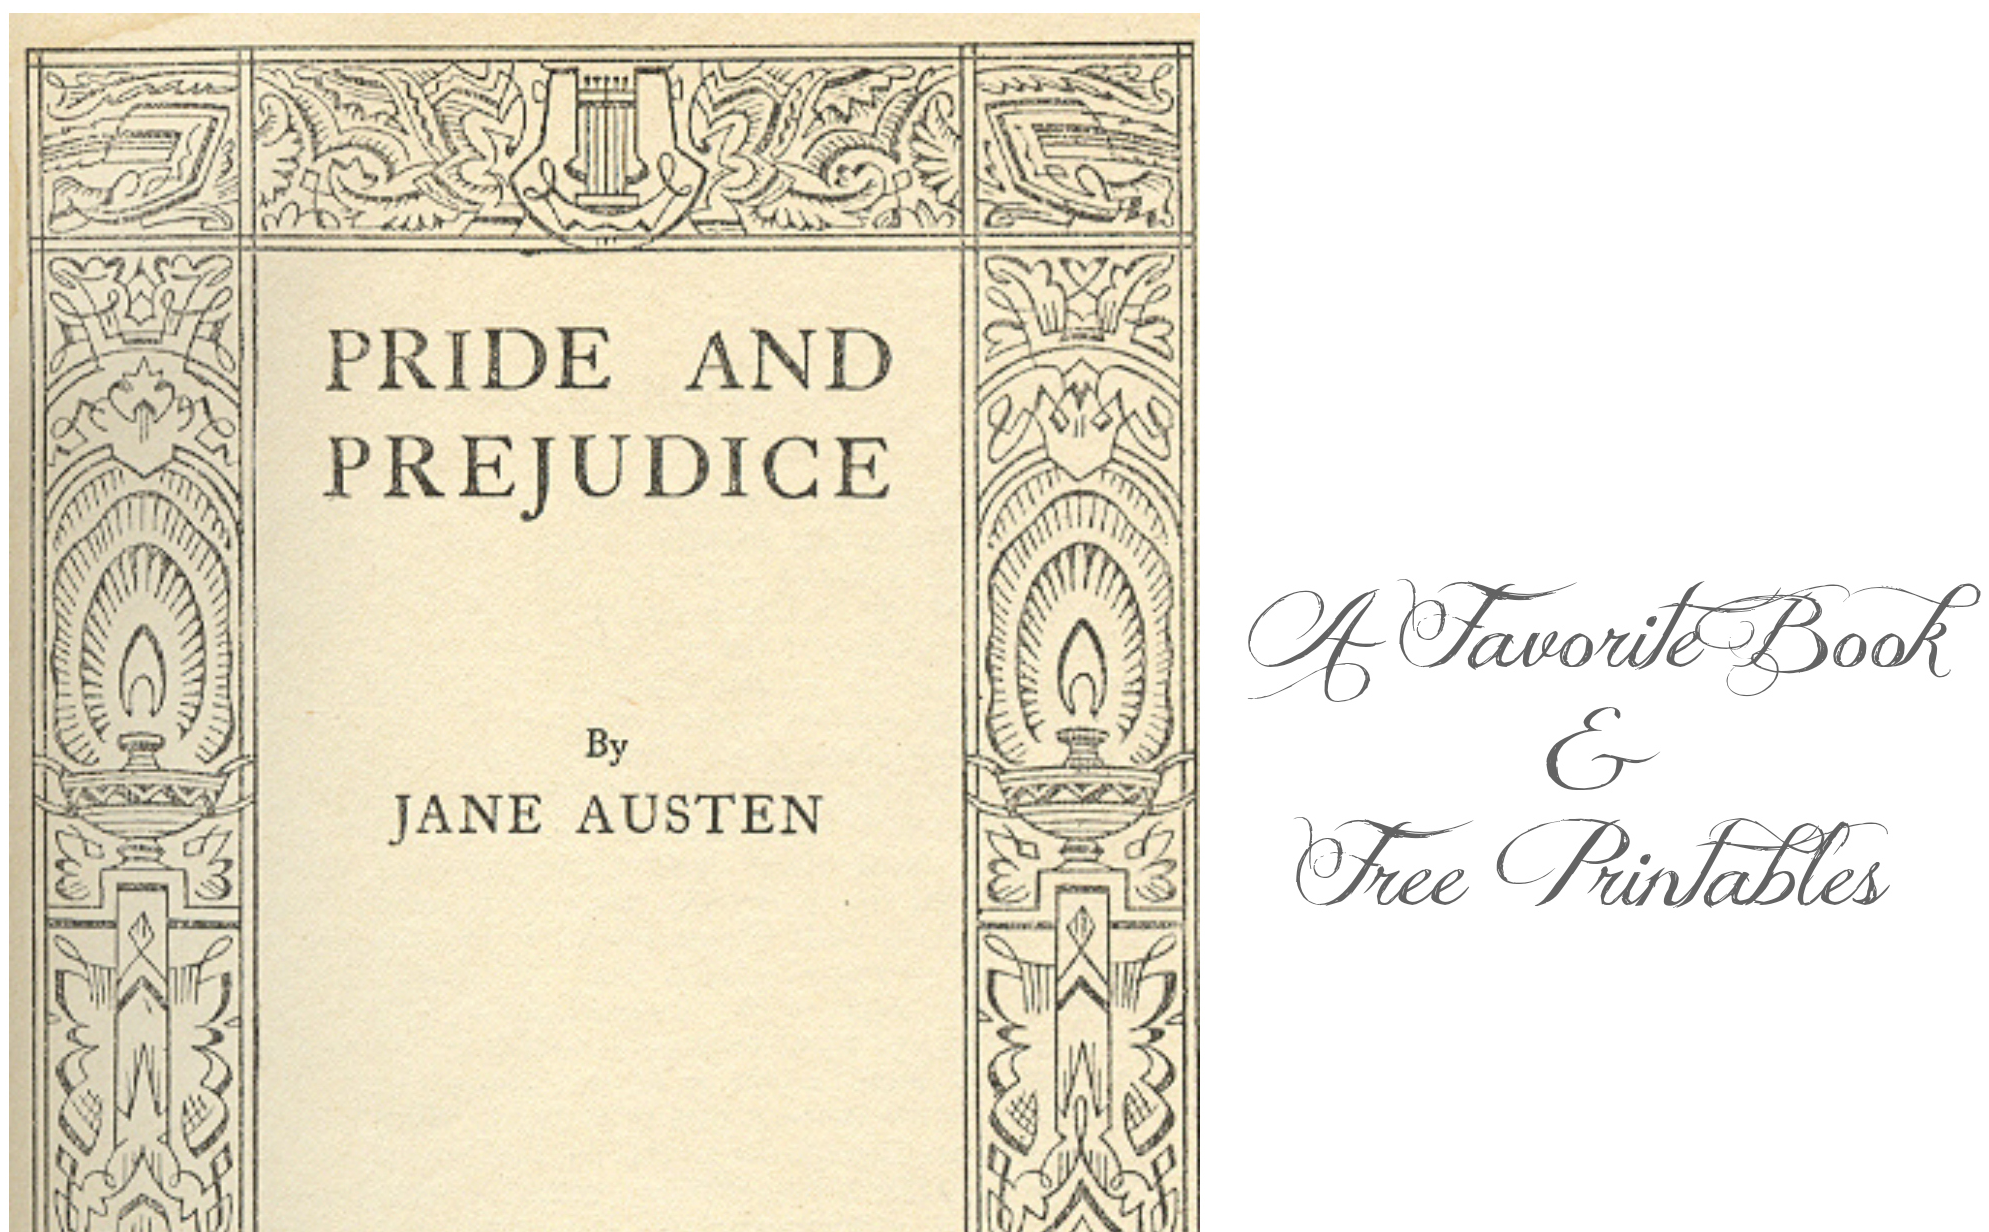 title significance pride and prejudice Explain why this title makes sense, as explore the reasons why pride and prejudice is more apt first impressions describes the main romantic conflict - will elizabeth and darcy end up together despite their first impressions of one another.